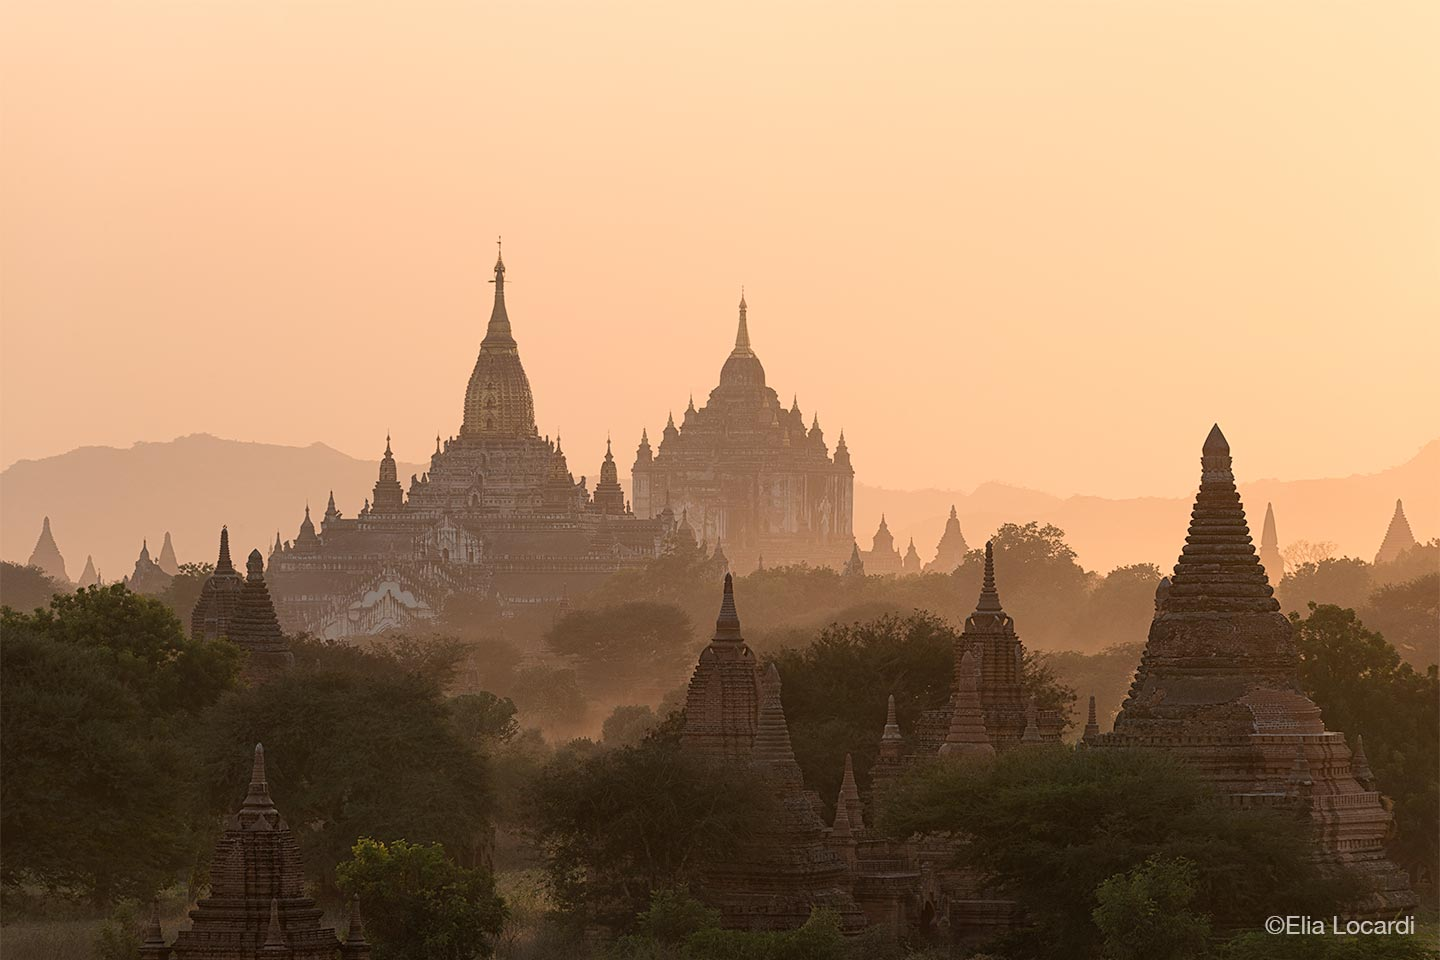 Myanmar-Burma-Photo-Tour-Elia-Locardi-Bagan-Temples